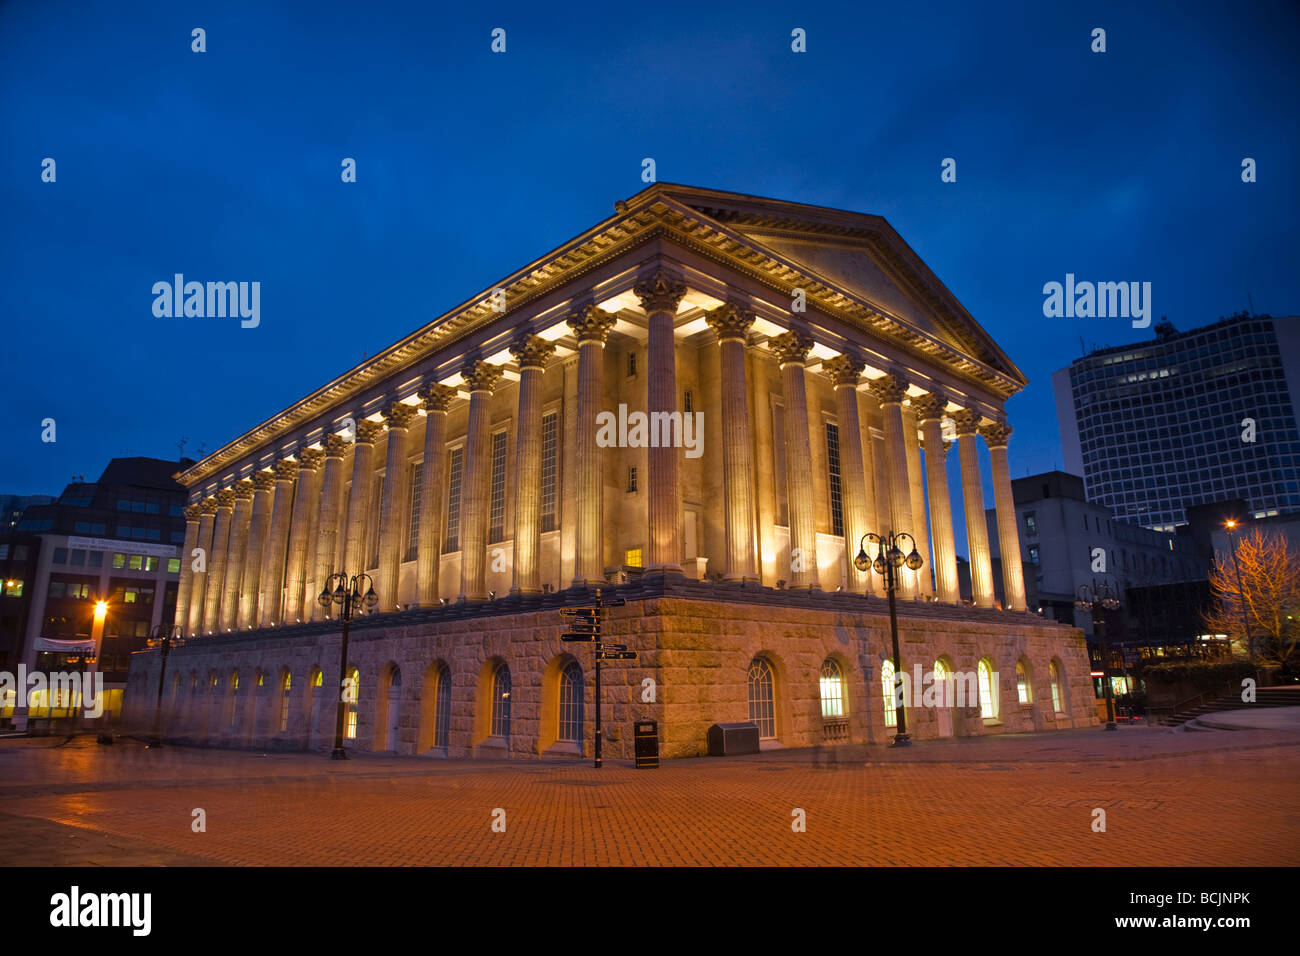 England, West Midlands, Birmingham, Town Hall - Stock Image